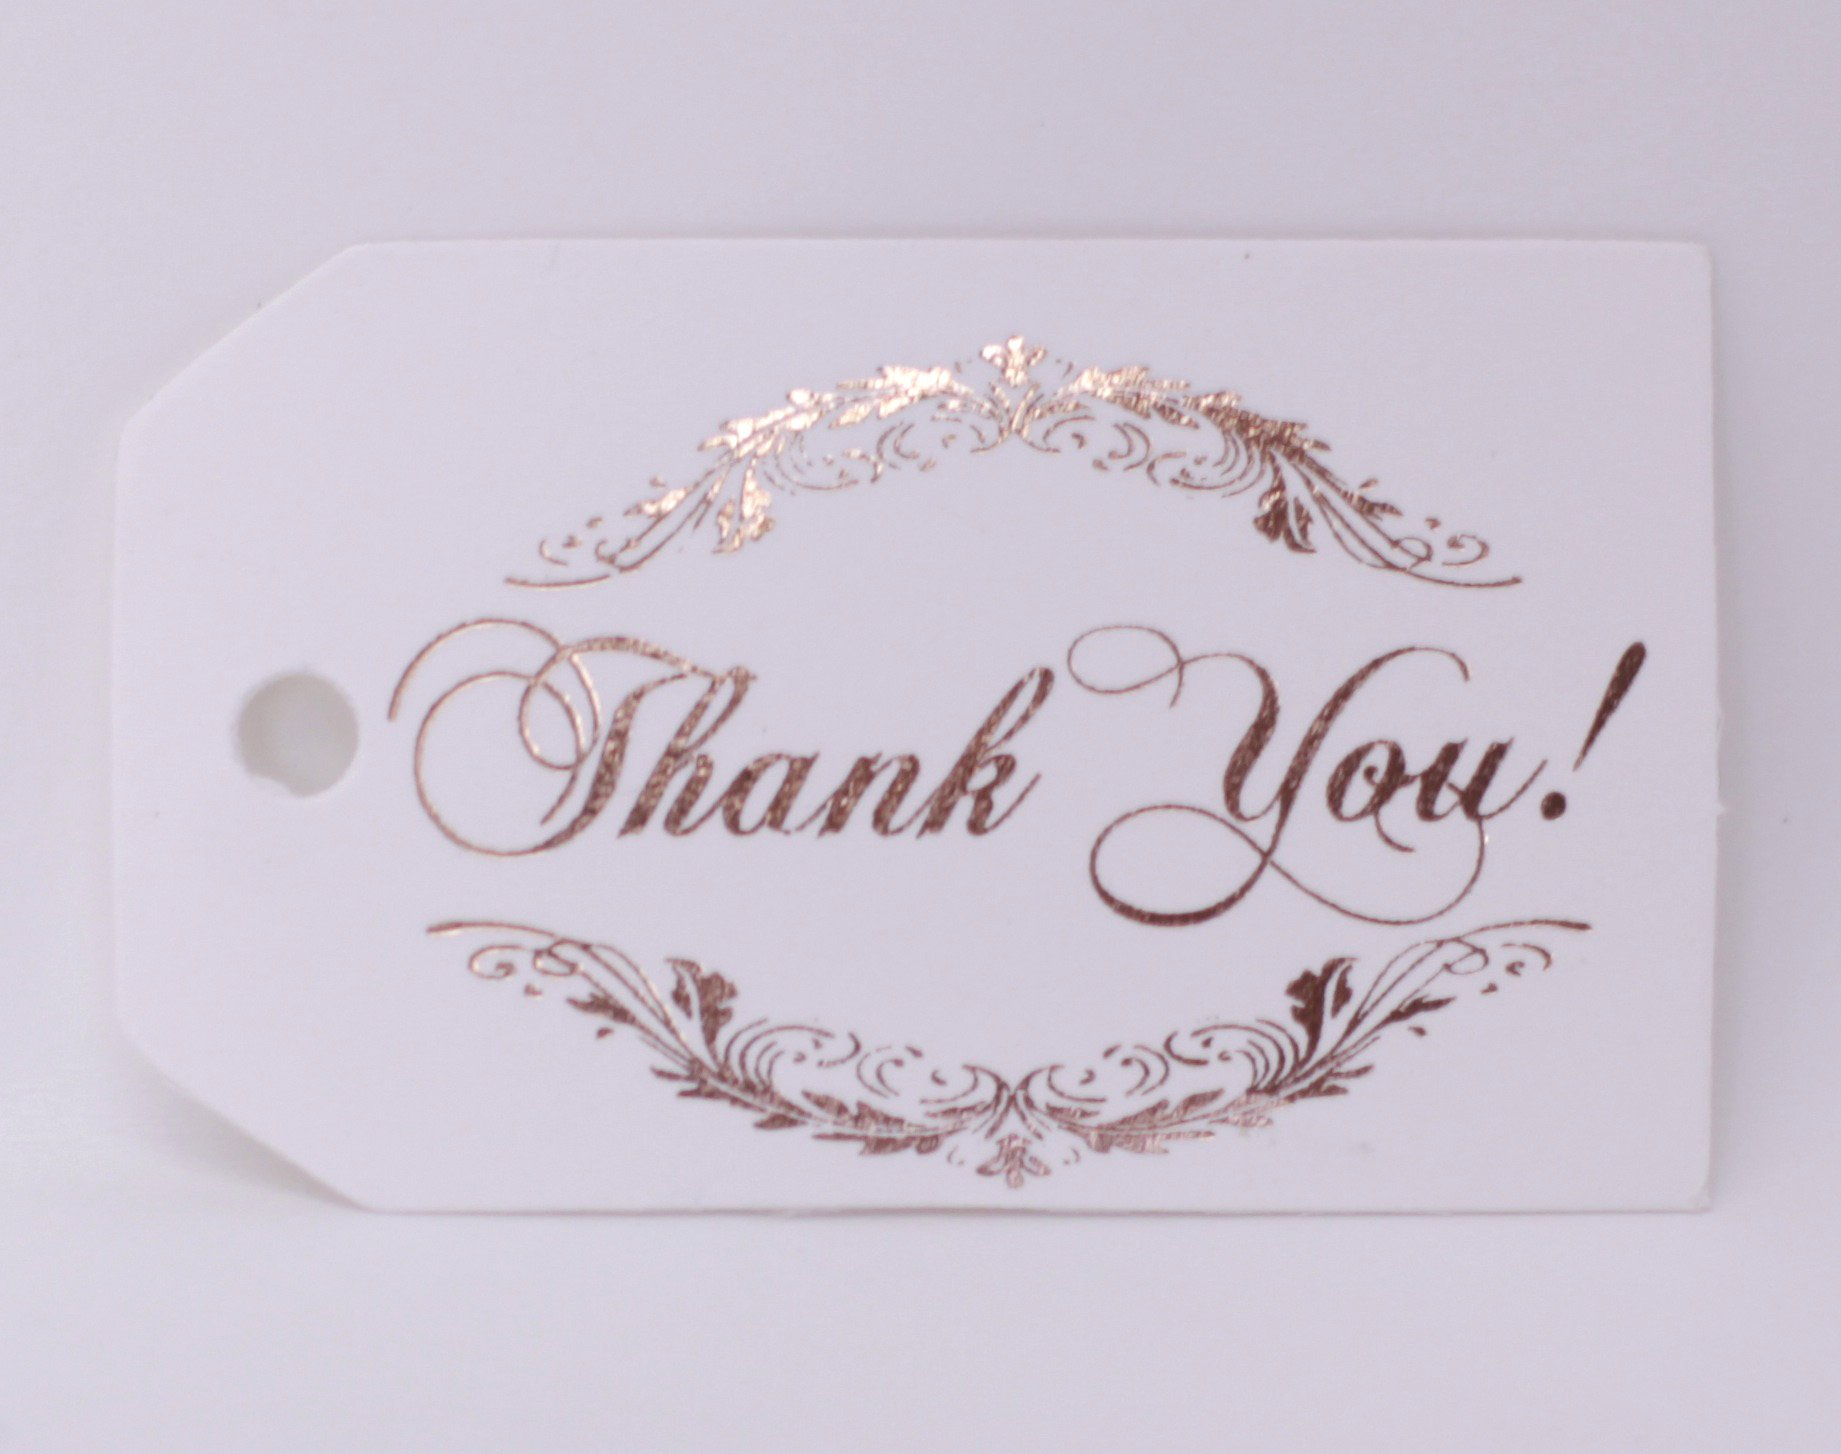 Thank You Tags, 40 Pack, Rose Gold Foil Printing, Off White Paper, Gift Tags, Party Favors (Thank You!2 Rose Gold)